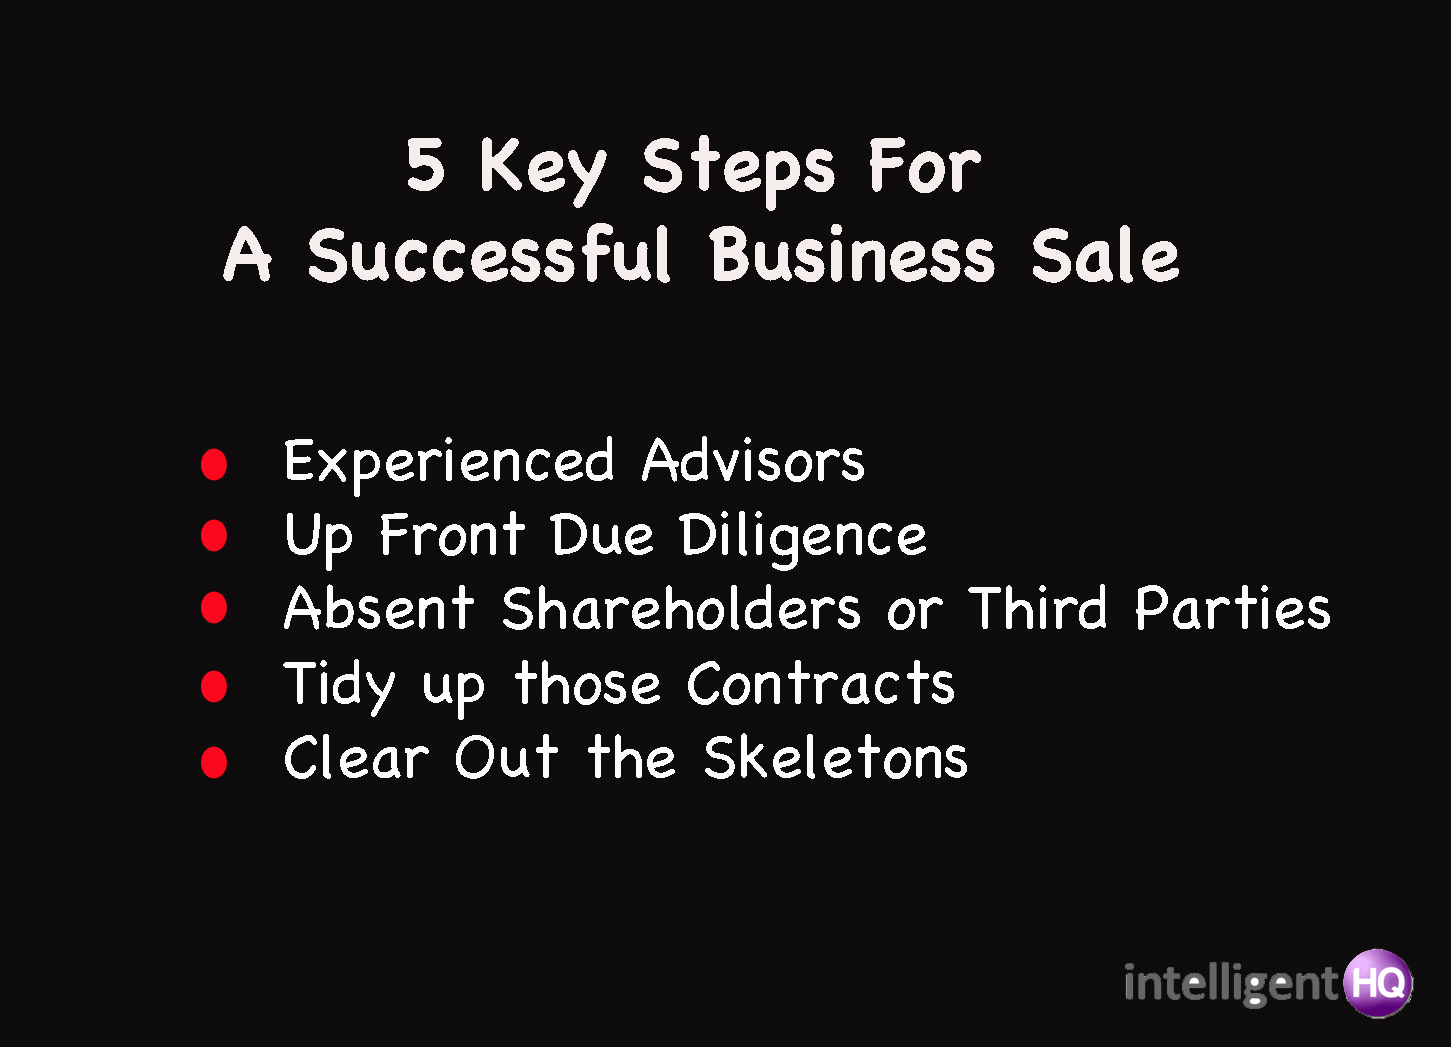 5 key steps for business sale Intelligenthq